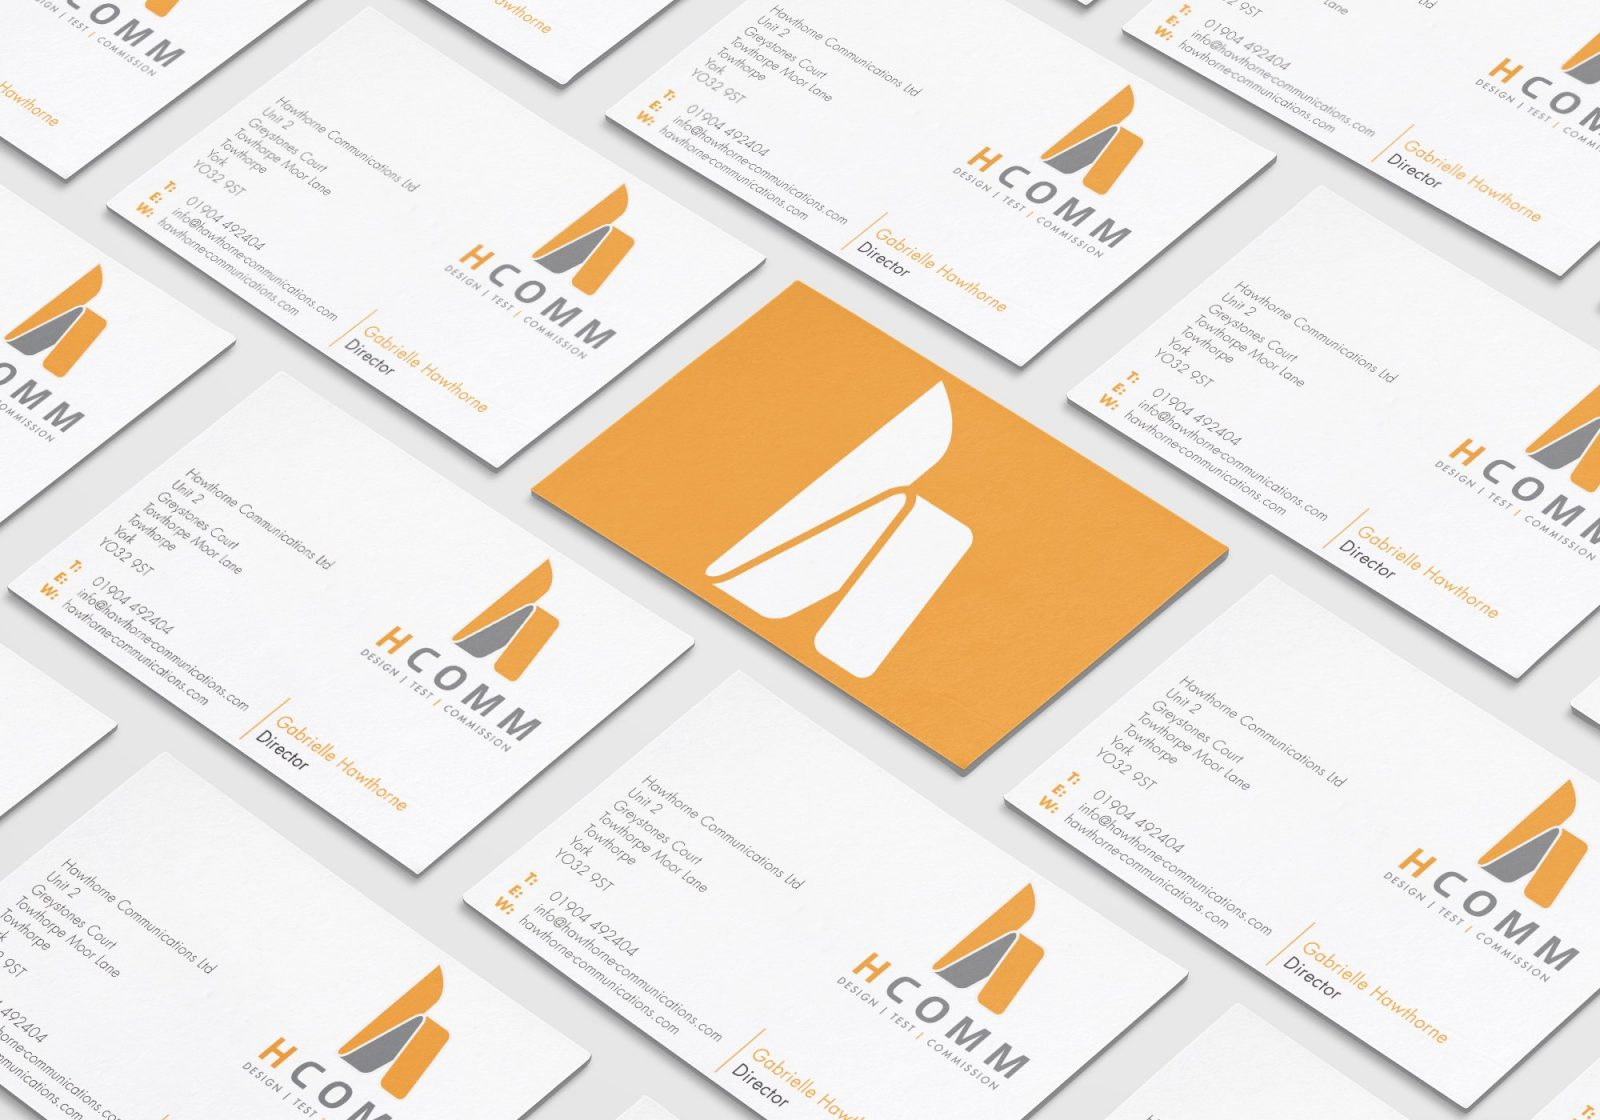 A business card design showing both sides of the design for Hcomm Rail